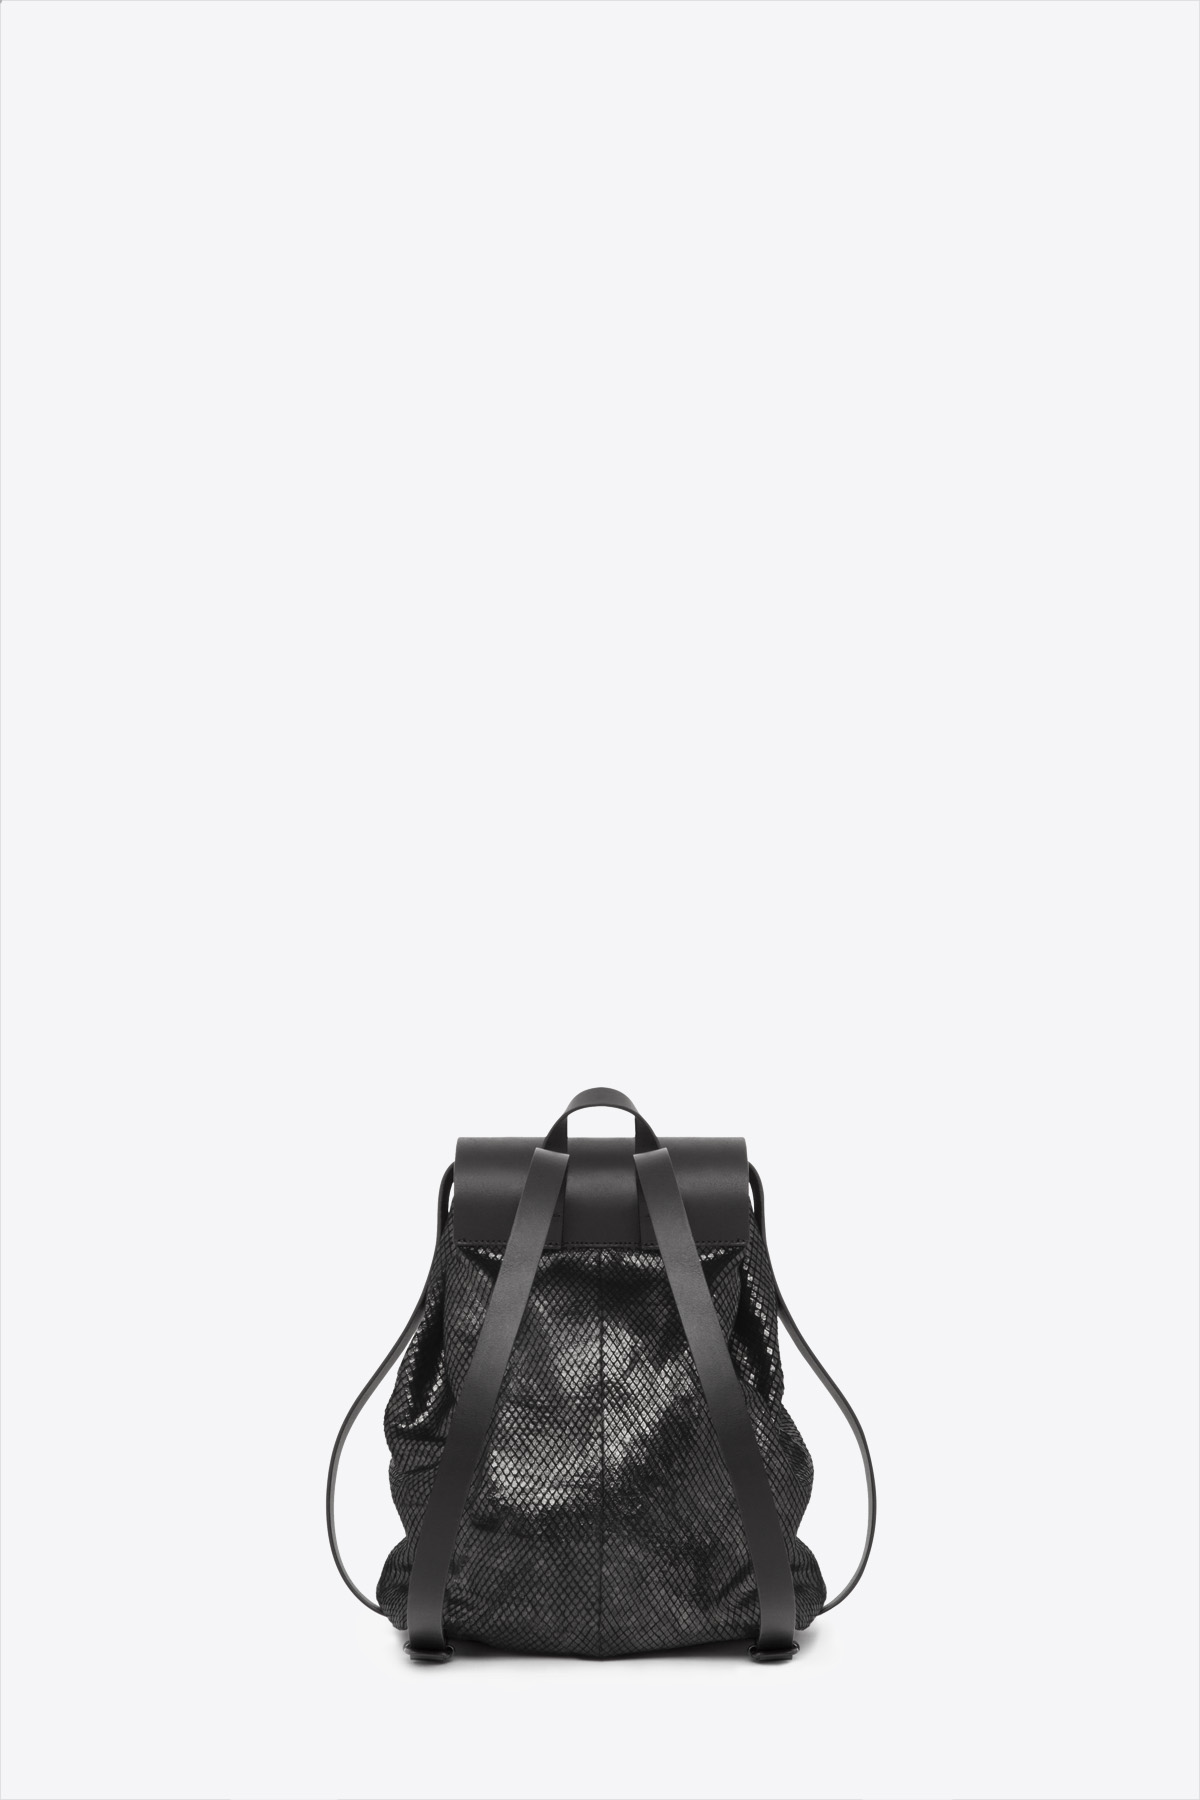 dclr009-b-backpack-a23-backsnakeblack-back